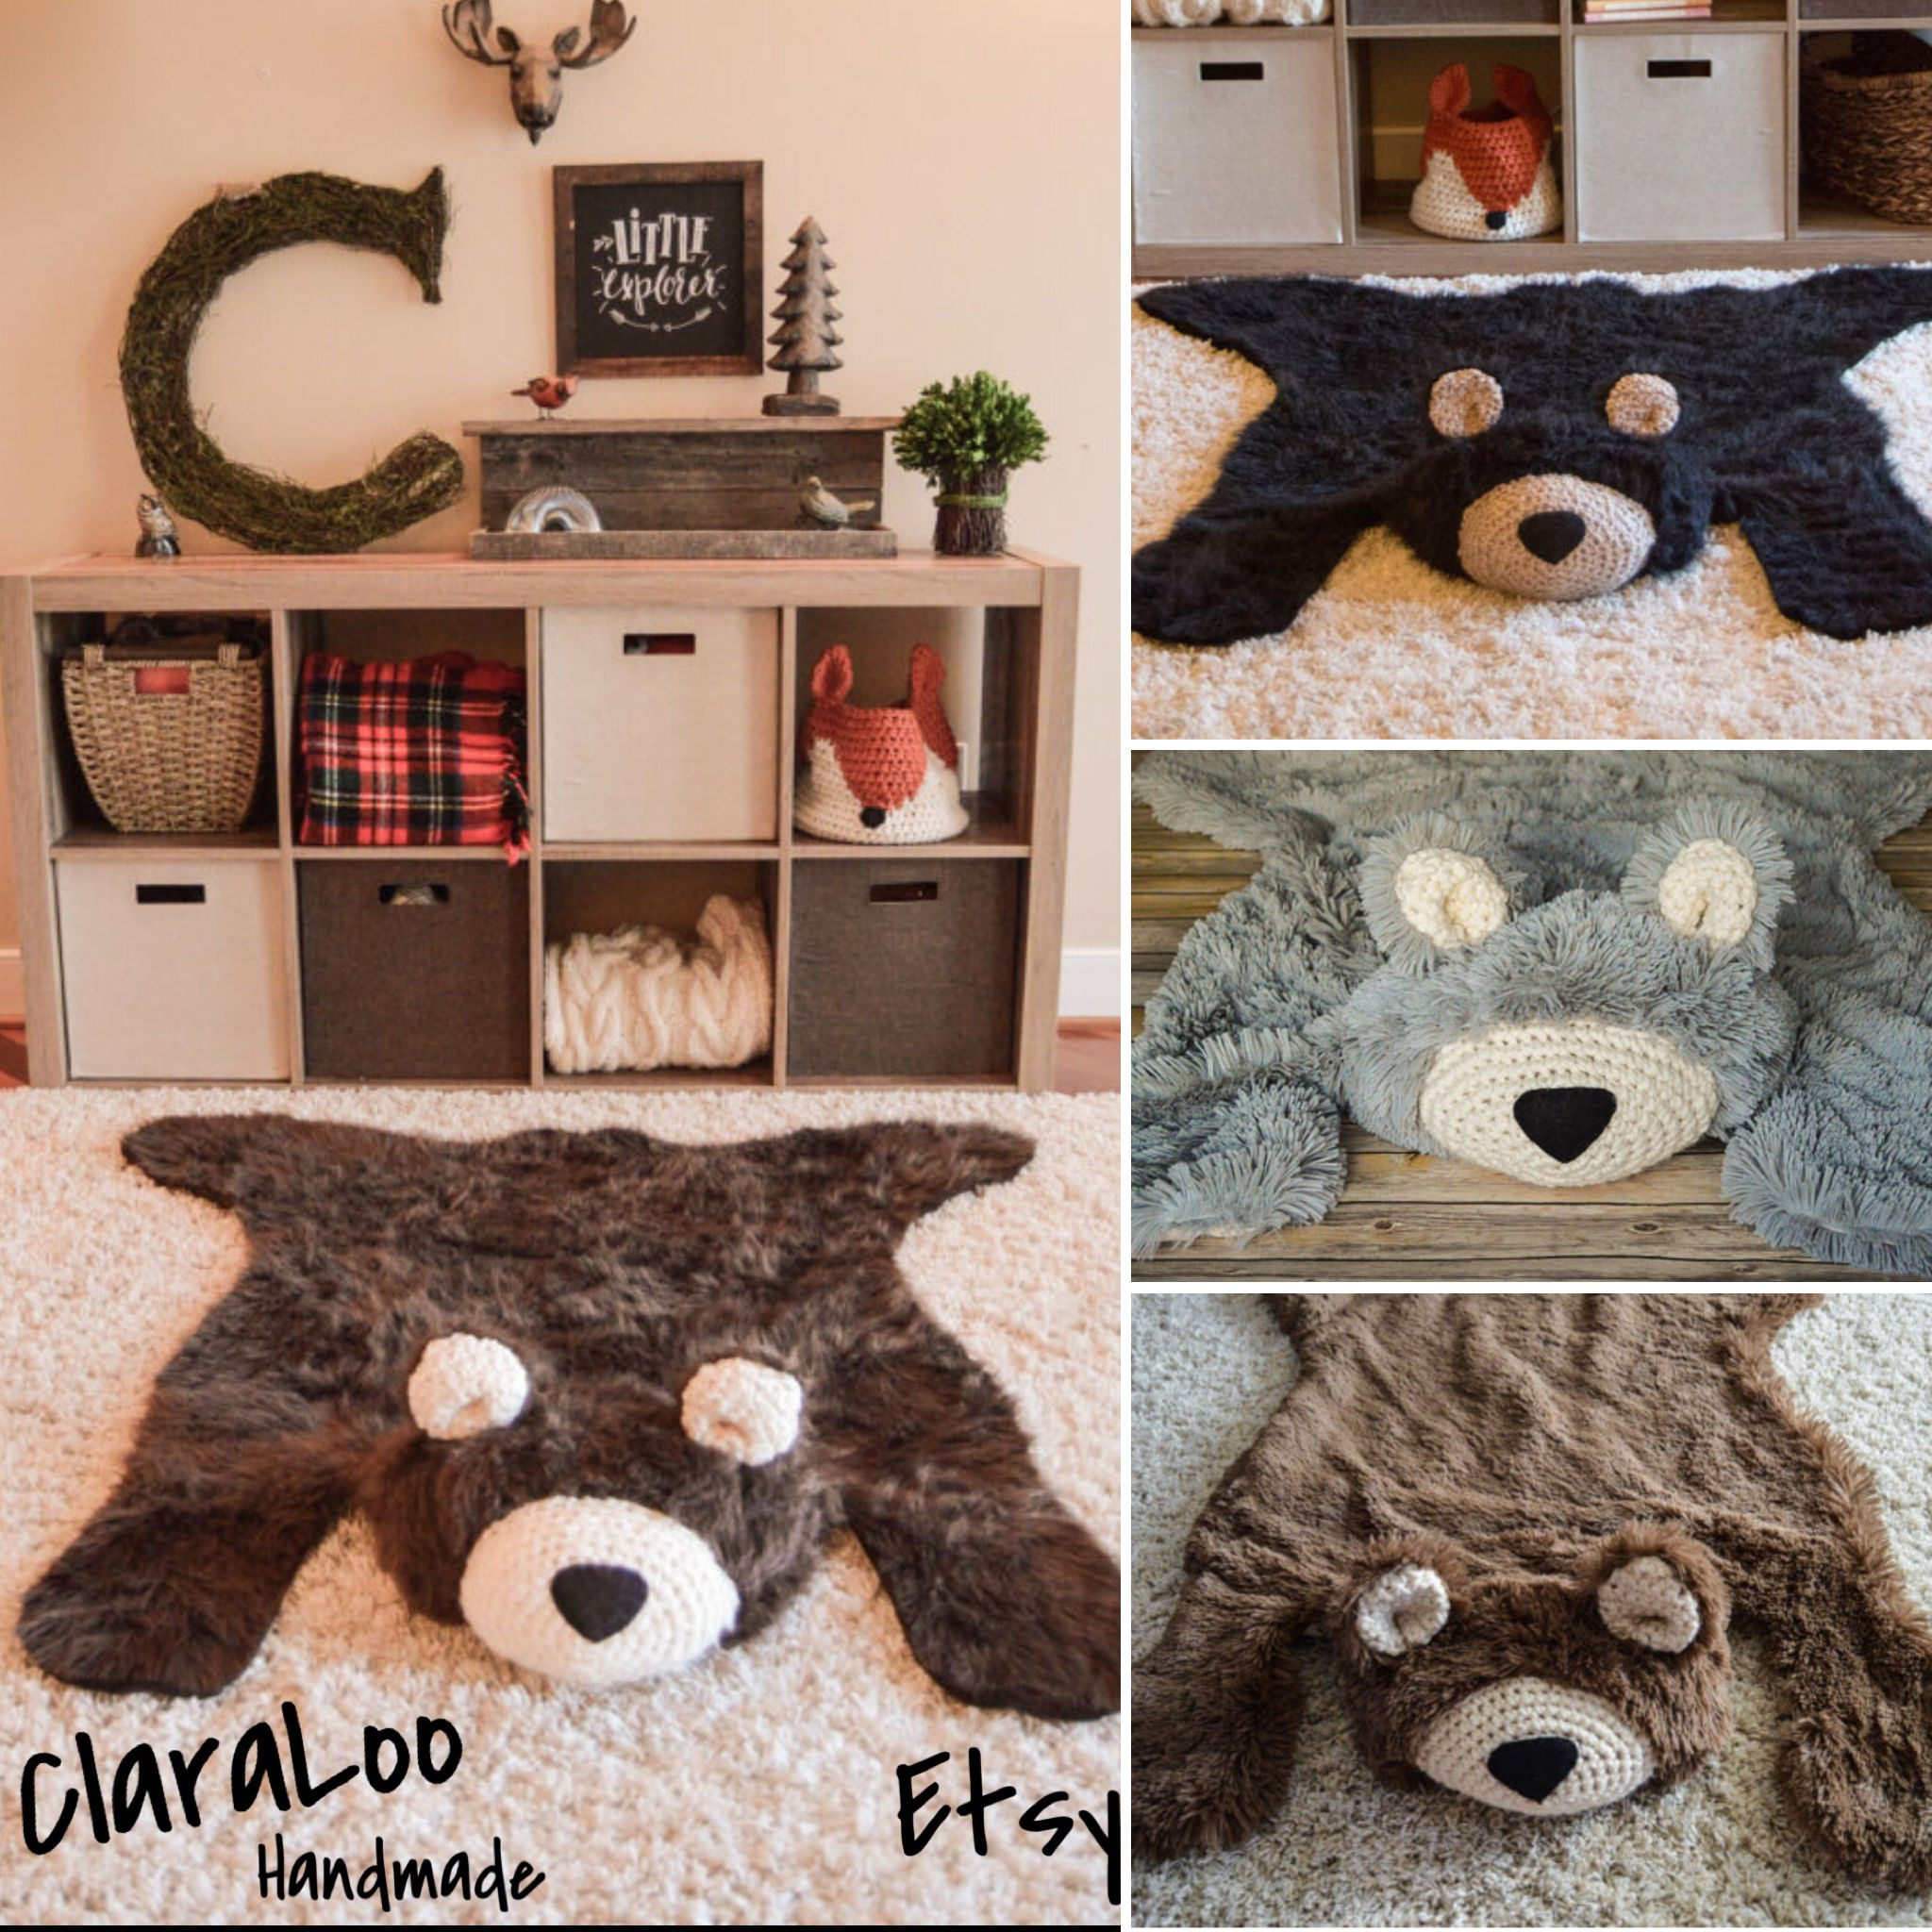 Woodland Nursery Baby Bear Rugs! By ClaraLoo I Can't